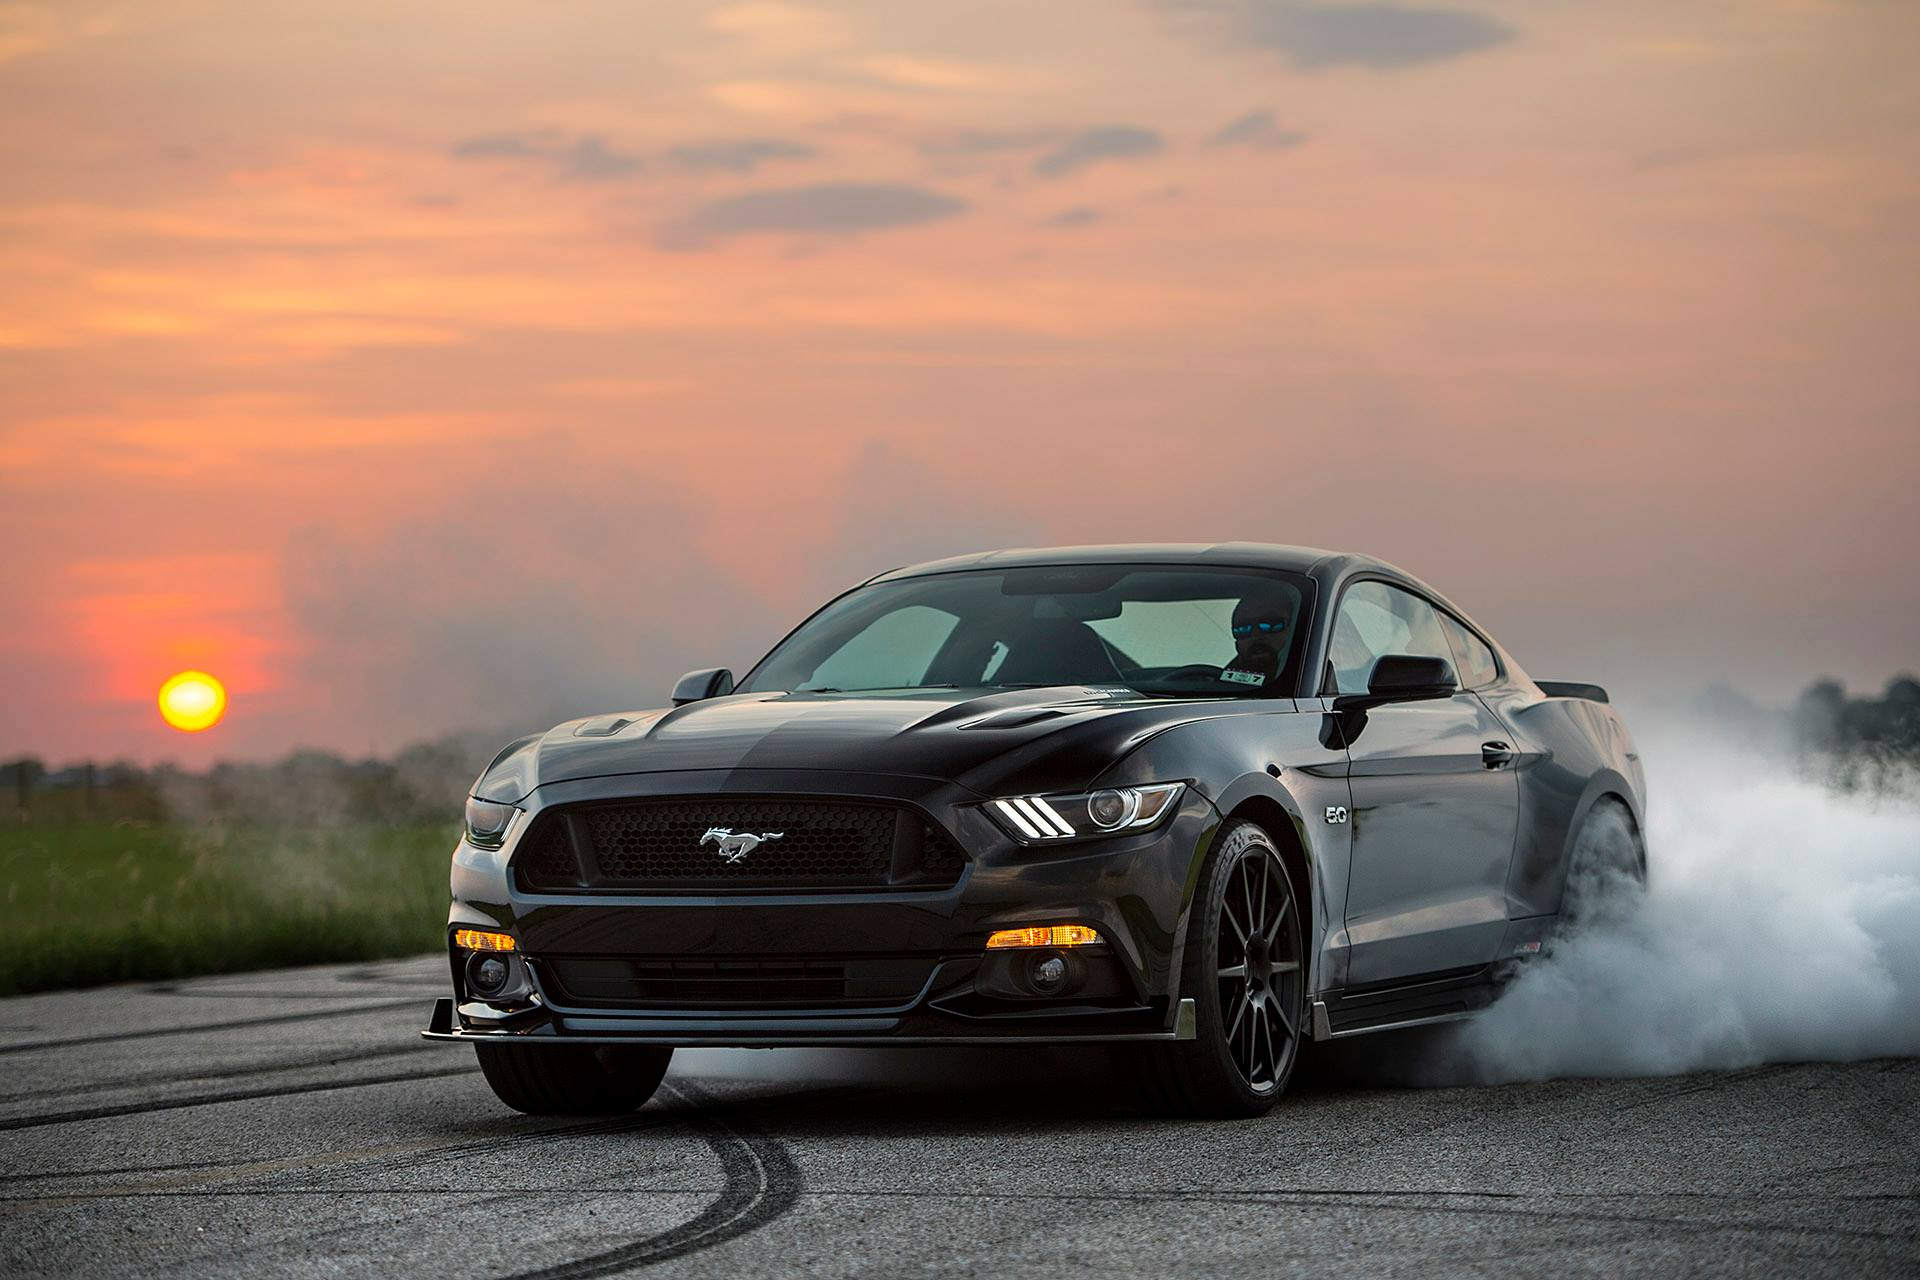 2015 Ford Mustang HPE750 by Hennessey - burning rubber ...